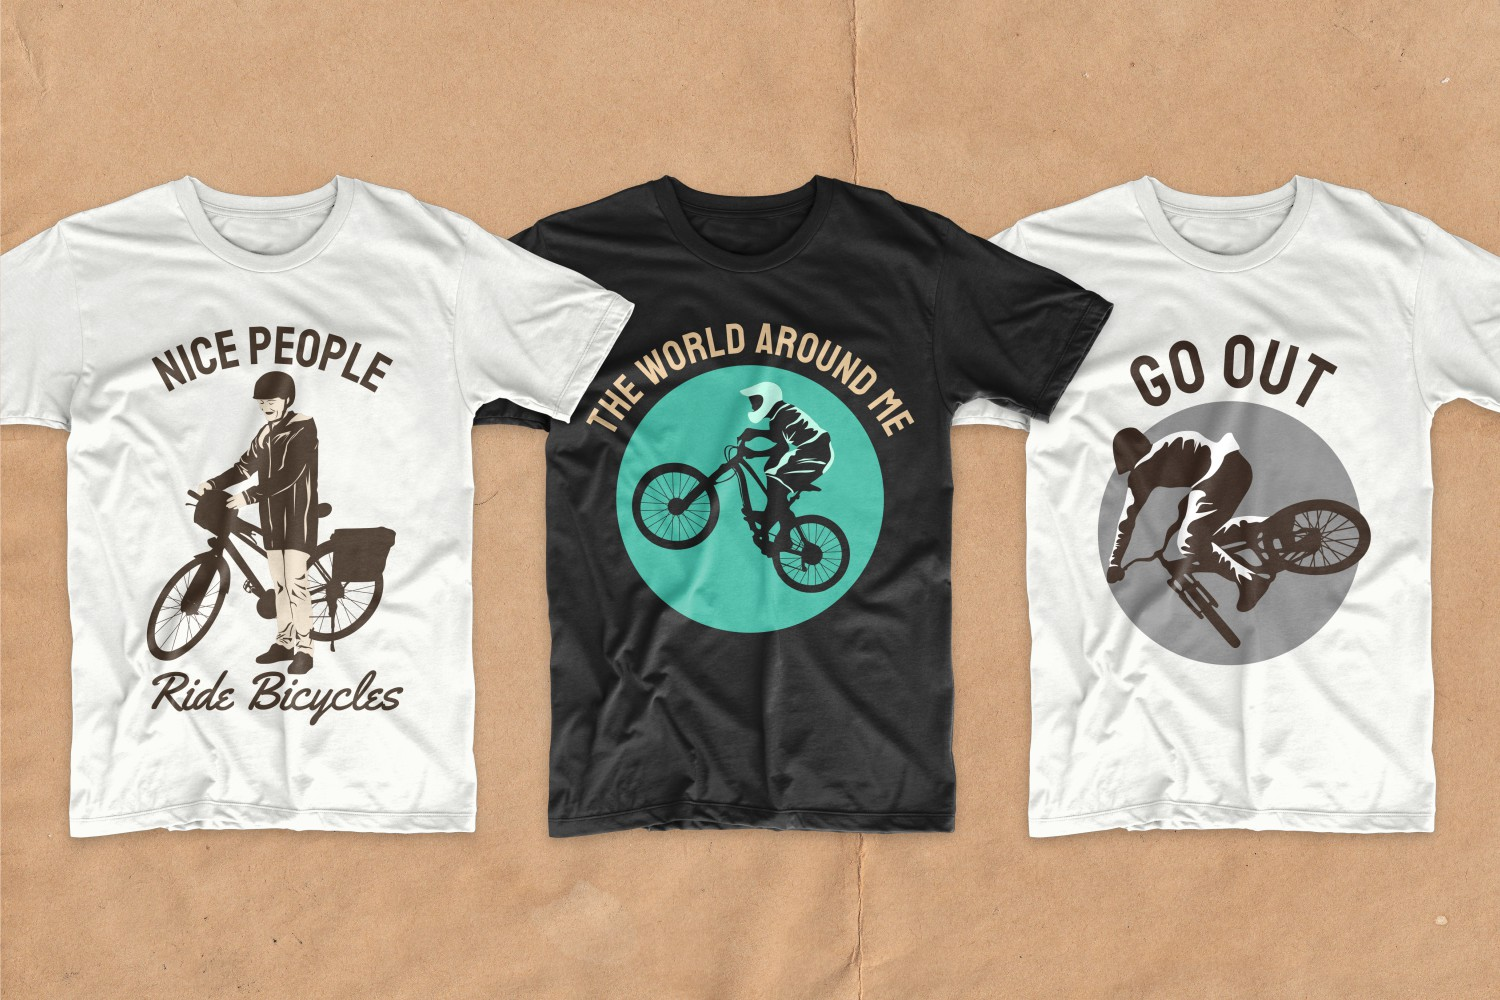 T-shirts with calm and measured cyclists.